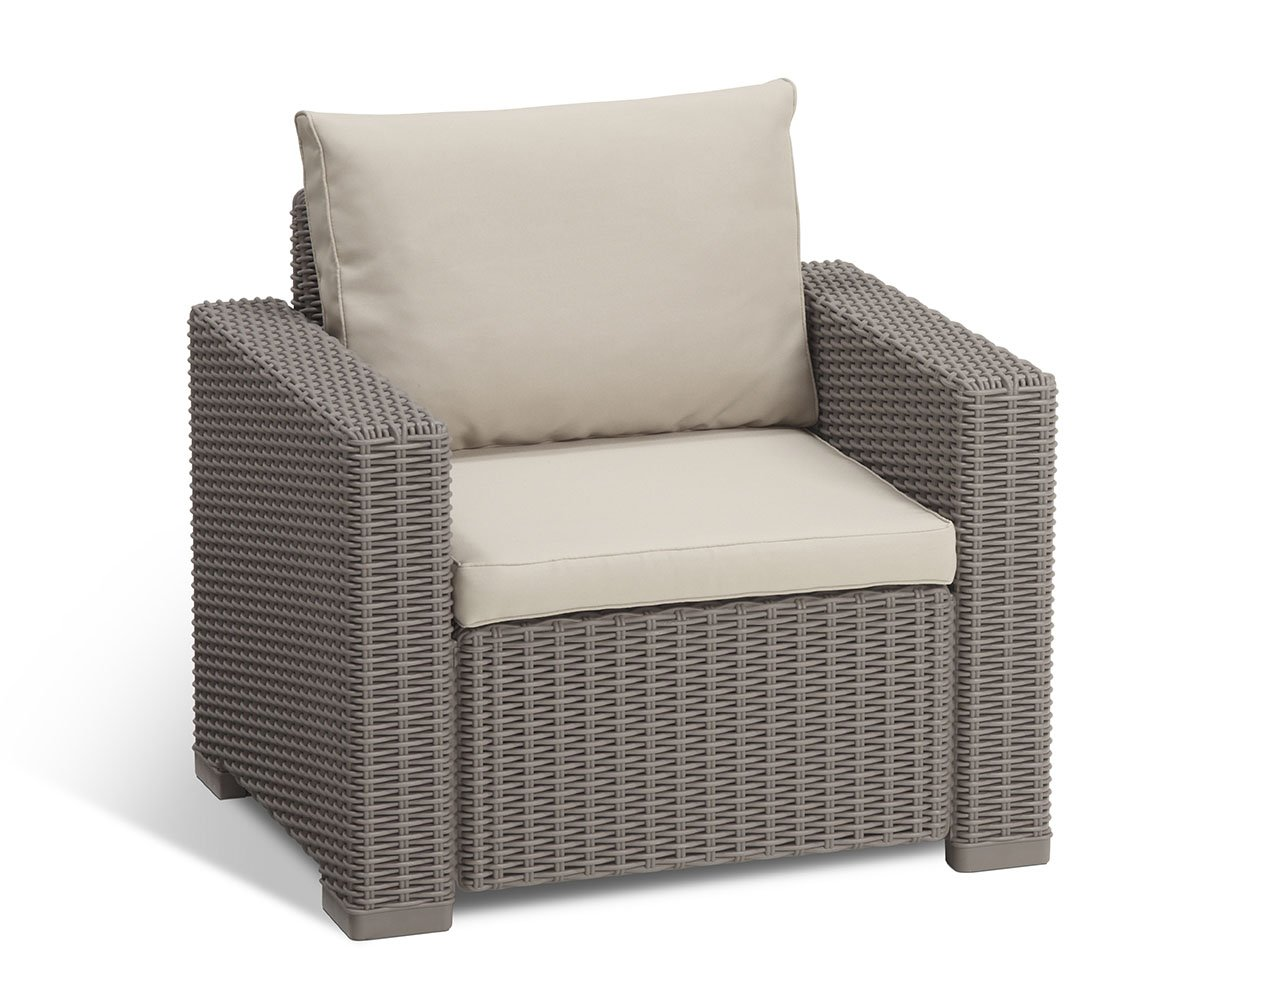 California Backyard Patio Furniture.Keter California All Weather Outdoor Patio Armchair With Cushions In A Resin Plastic Wicker Pattern Cappuccino Sand